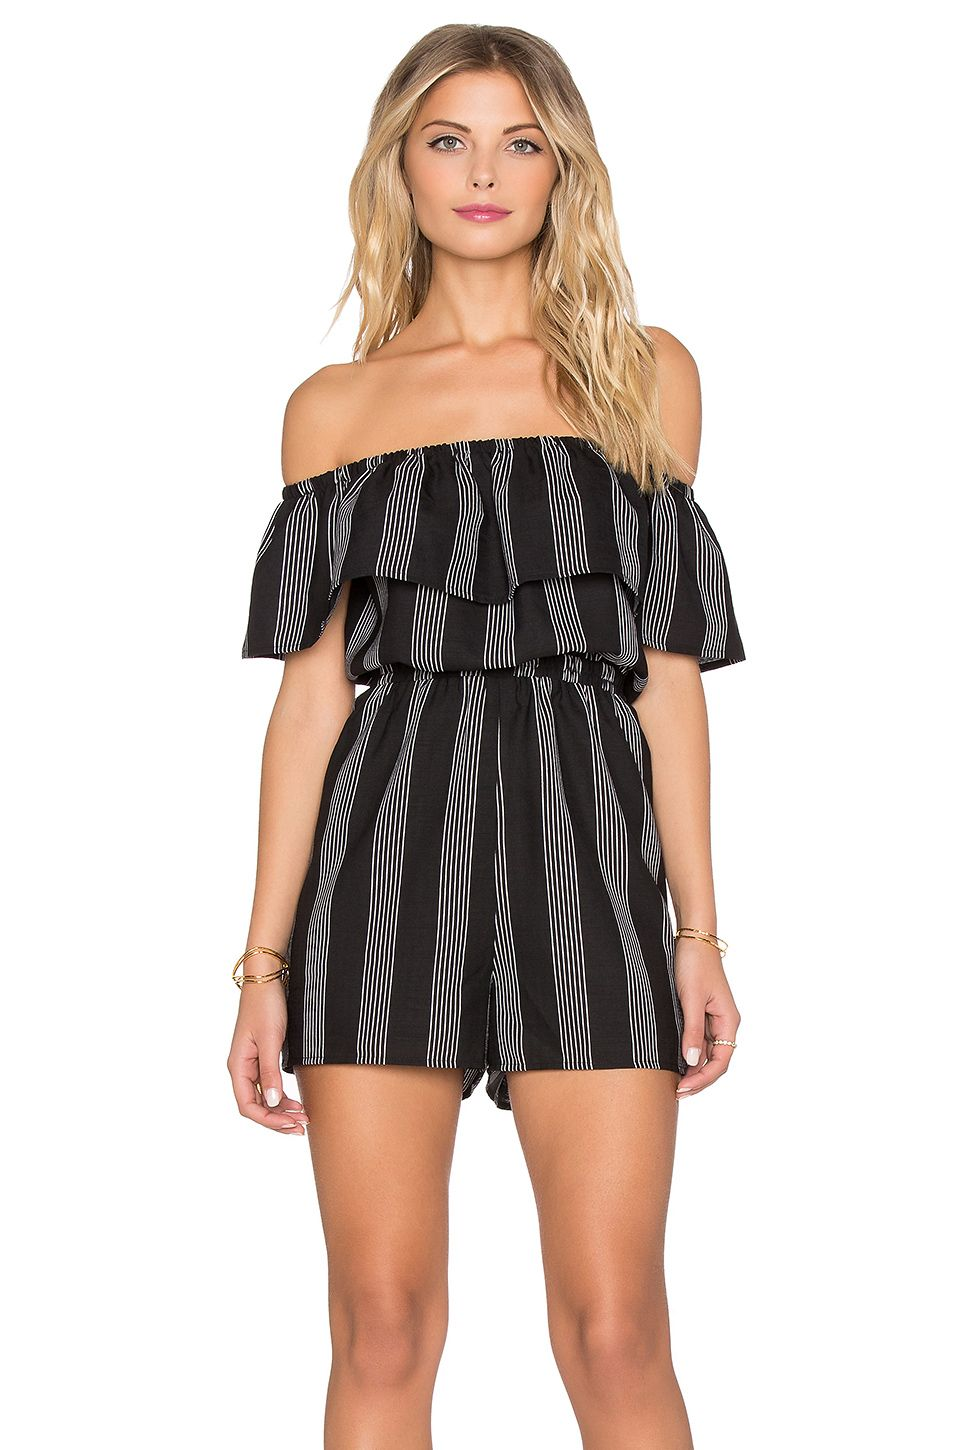 de8c9baa52a407 Lucca Couture Striped Off Shoulder Romper in Black & White Stripes ...